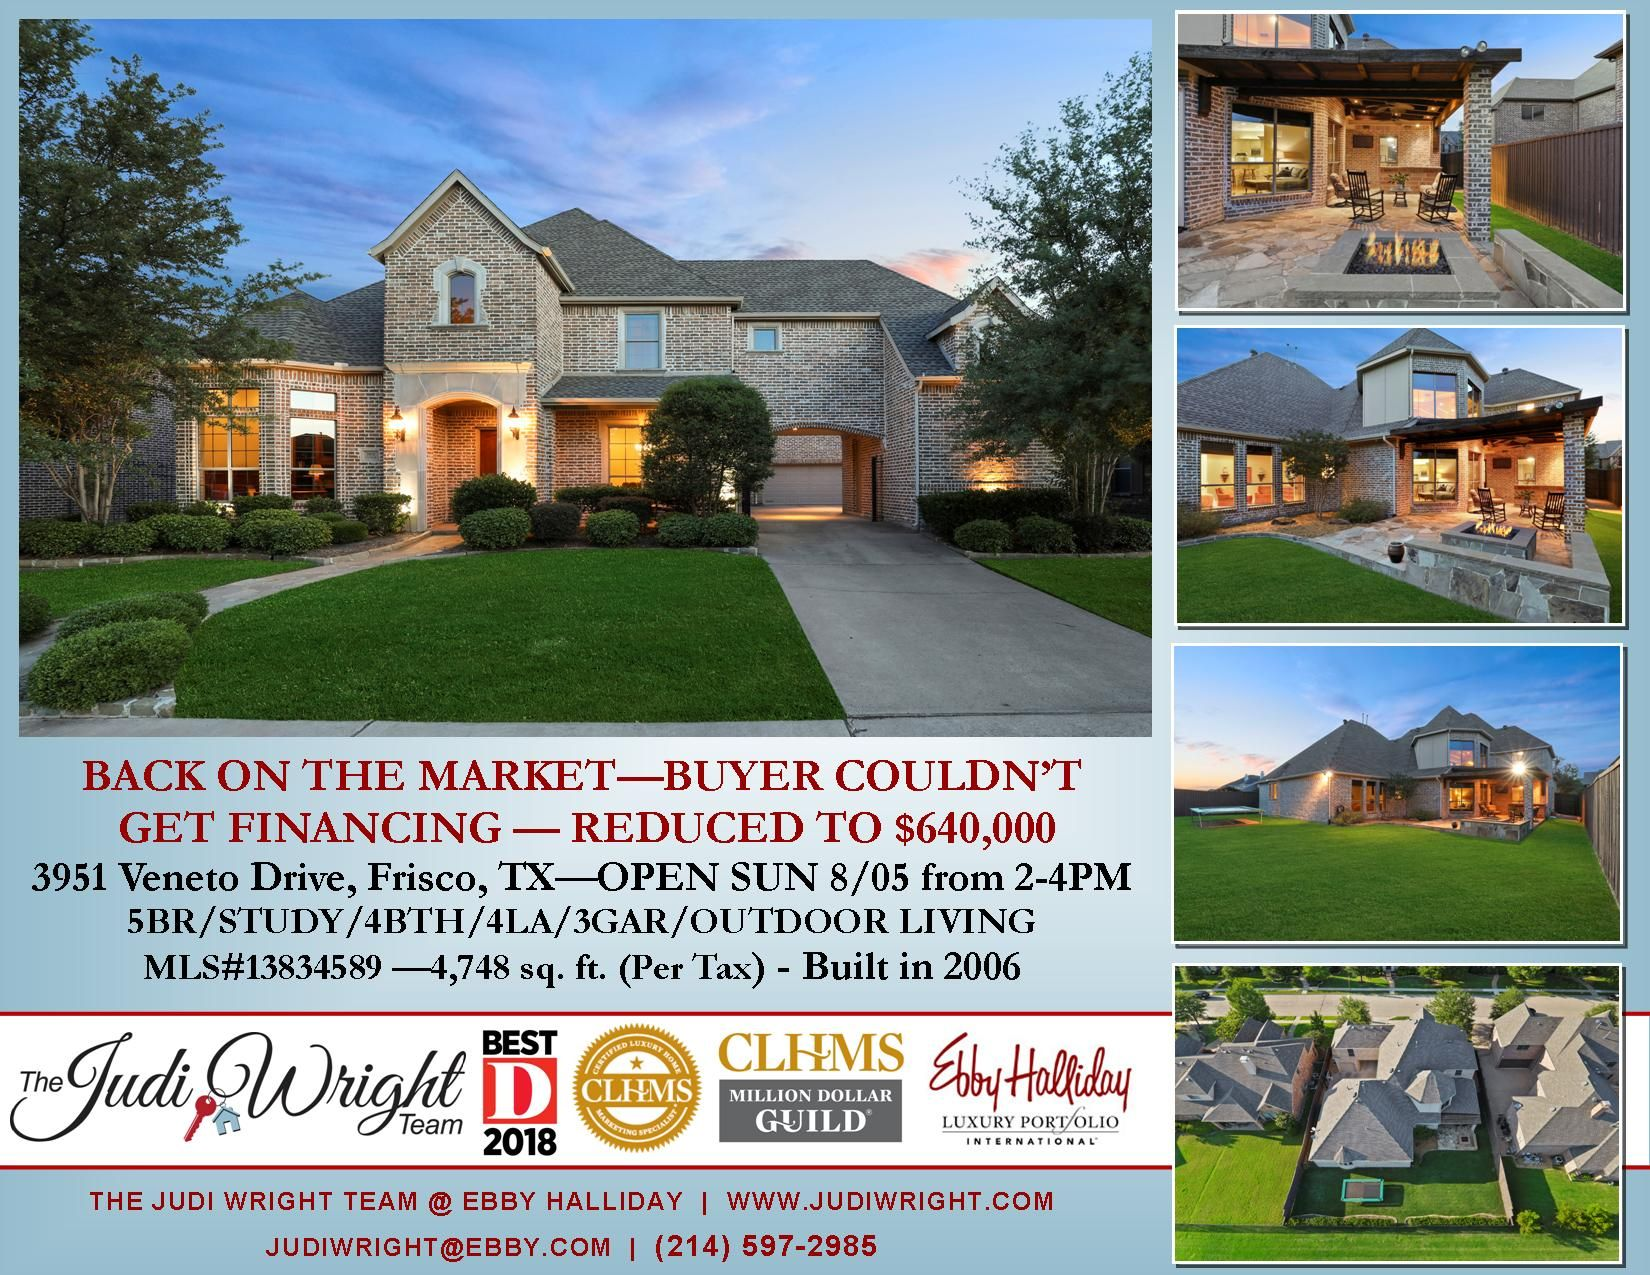 Back On The Market In Frisco S Griffin Parc Frisco Isd Wakeland Hs Buyer Couldn T Get Financing You Know The Drill Great Open House Frisco Isd Outdoor